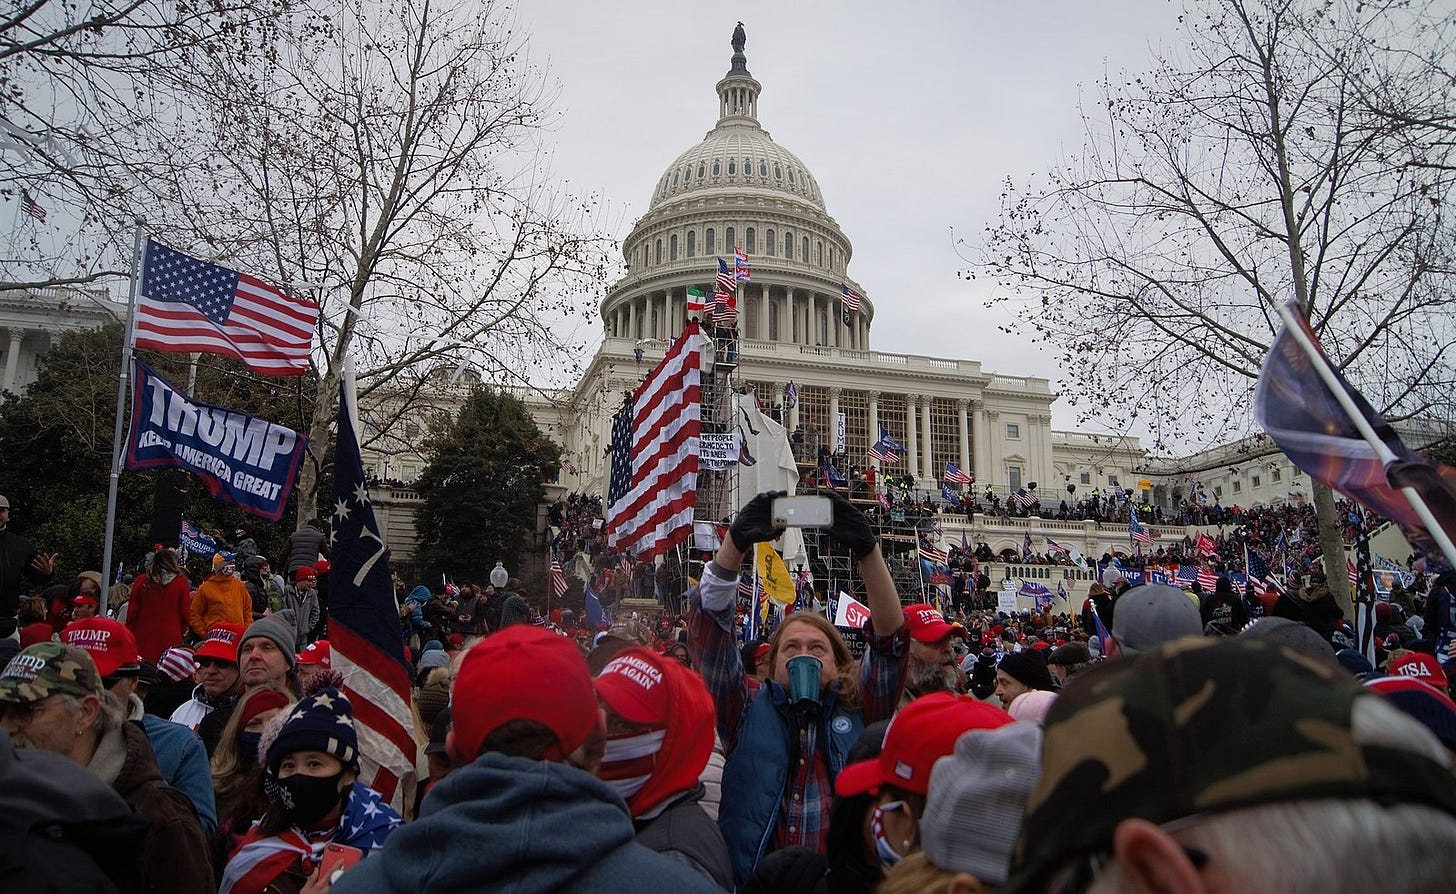 A crowd of protestors, many wearing red hats and waving American flags, is standing in front of the Capitol building. One person is also flying a Trump, Make America Great flag. A white man is holding up his phone to take a video of the scene. Protesters have climbed up the walls of the Capitol.